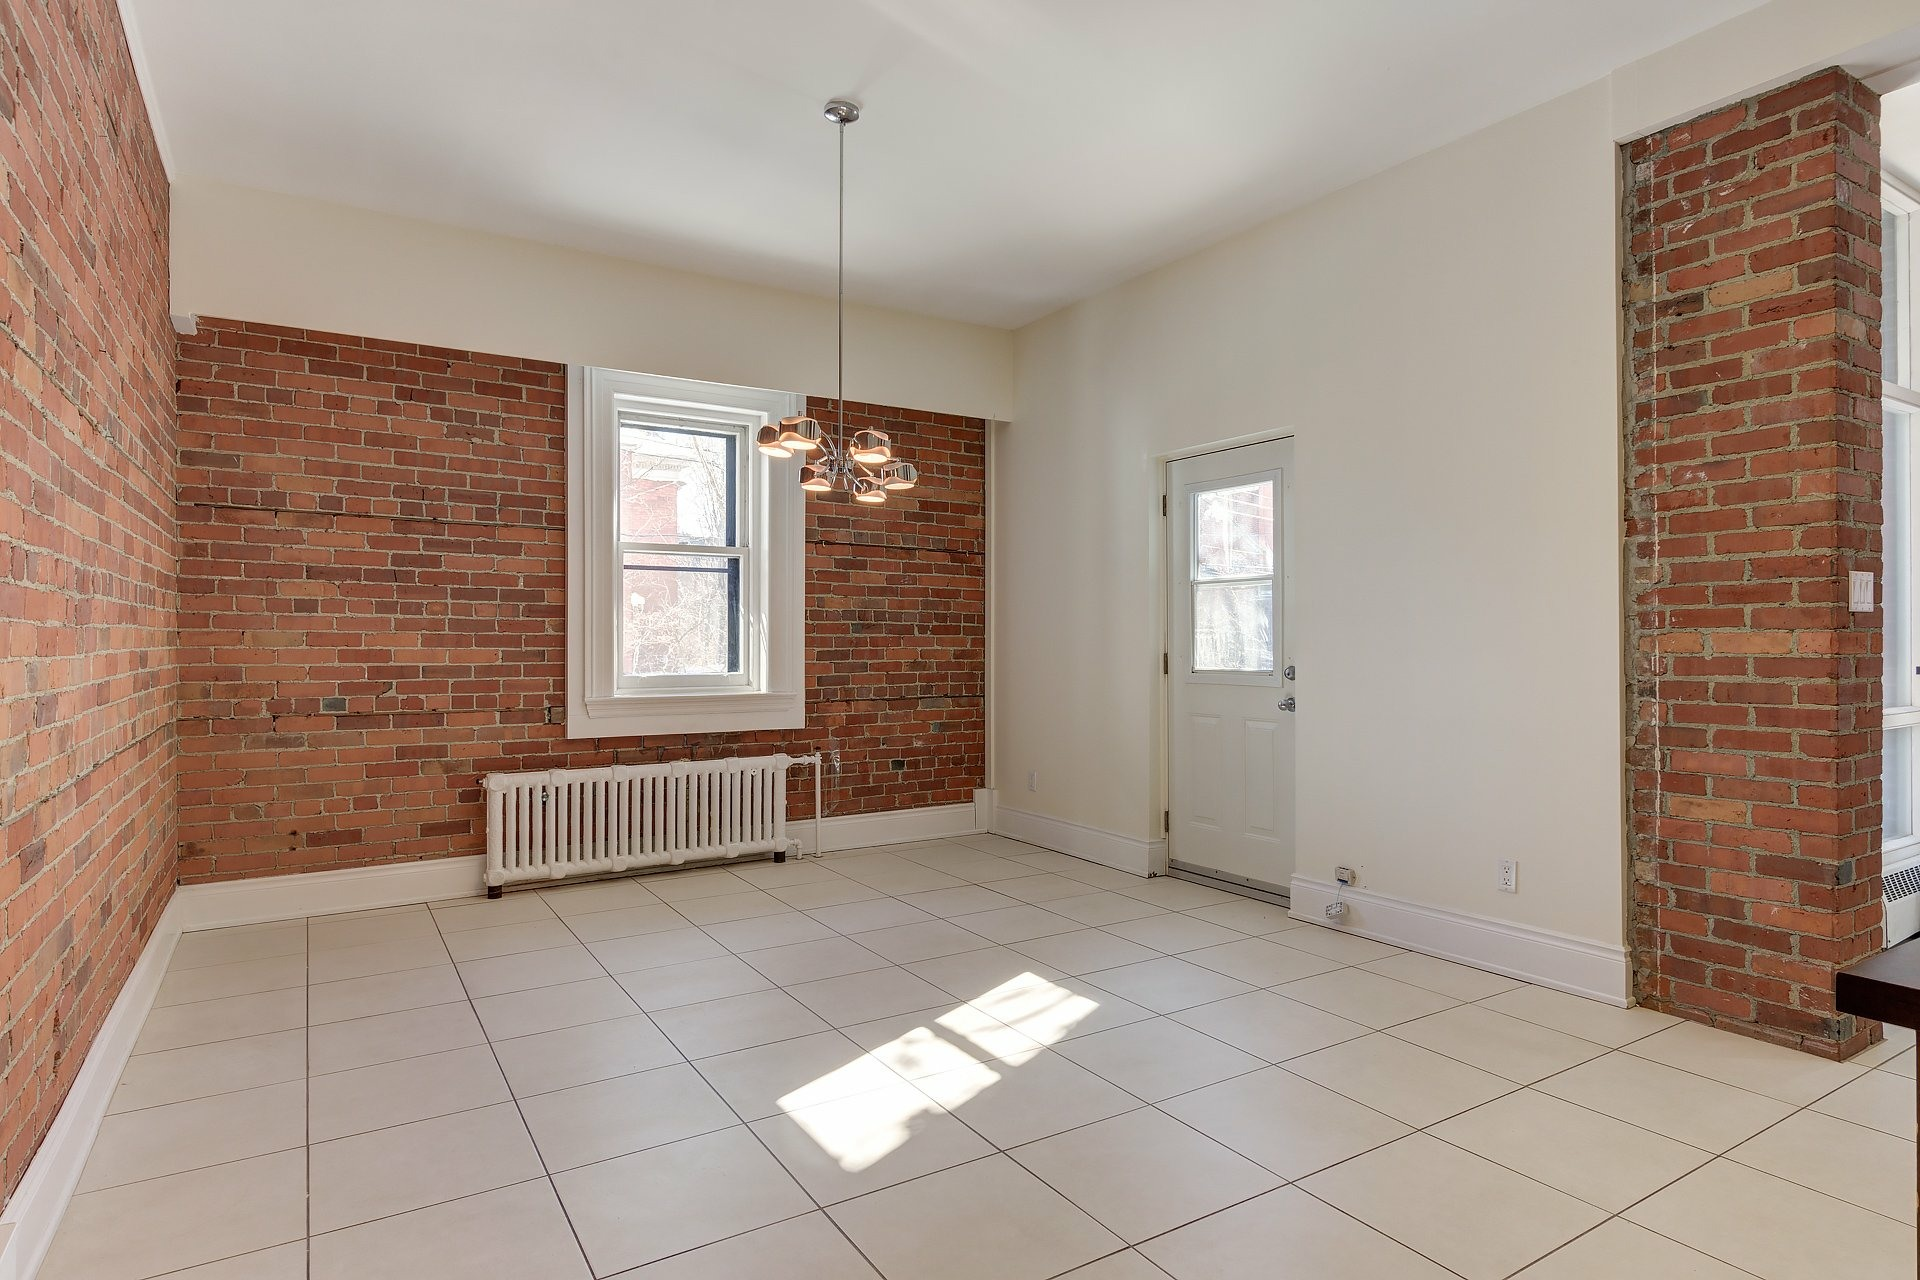 image 8 - House For rent Westmount - 9 rooms